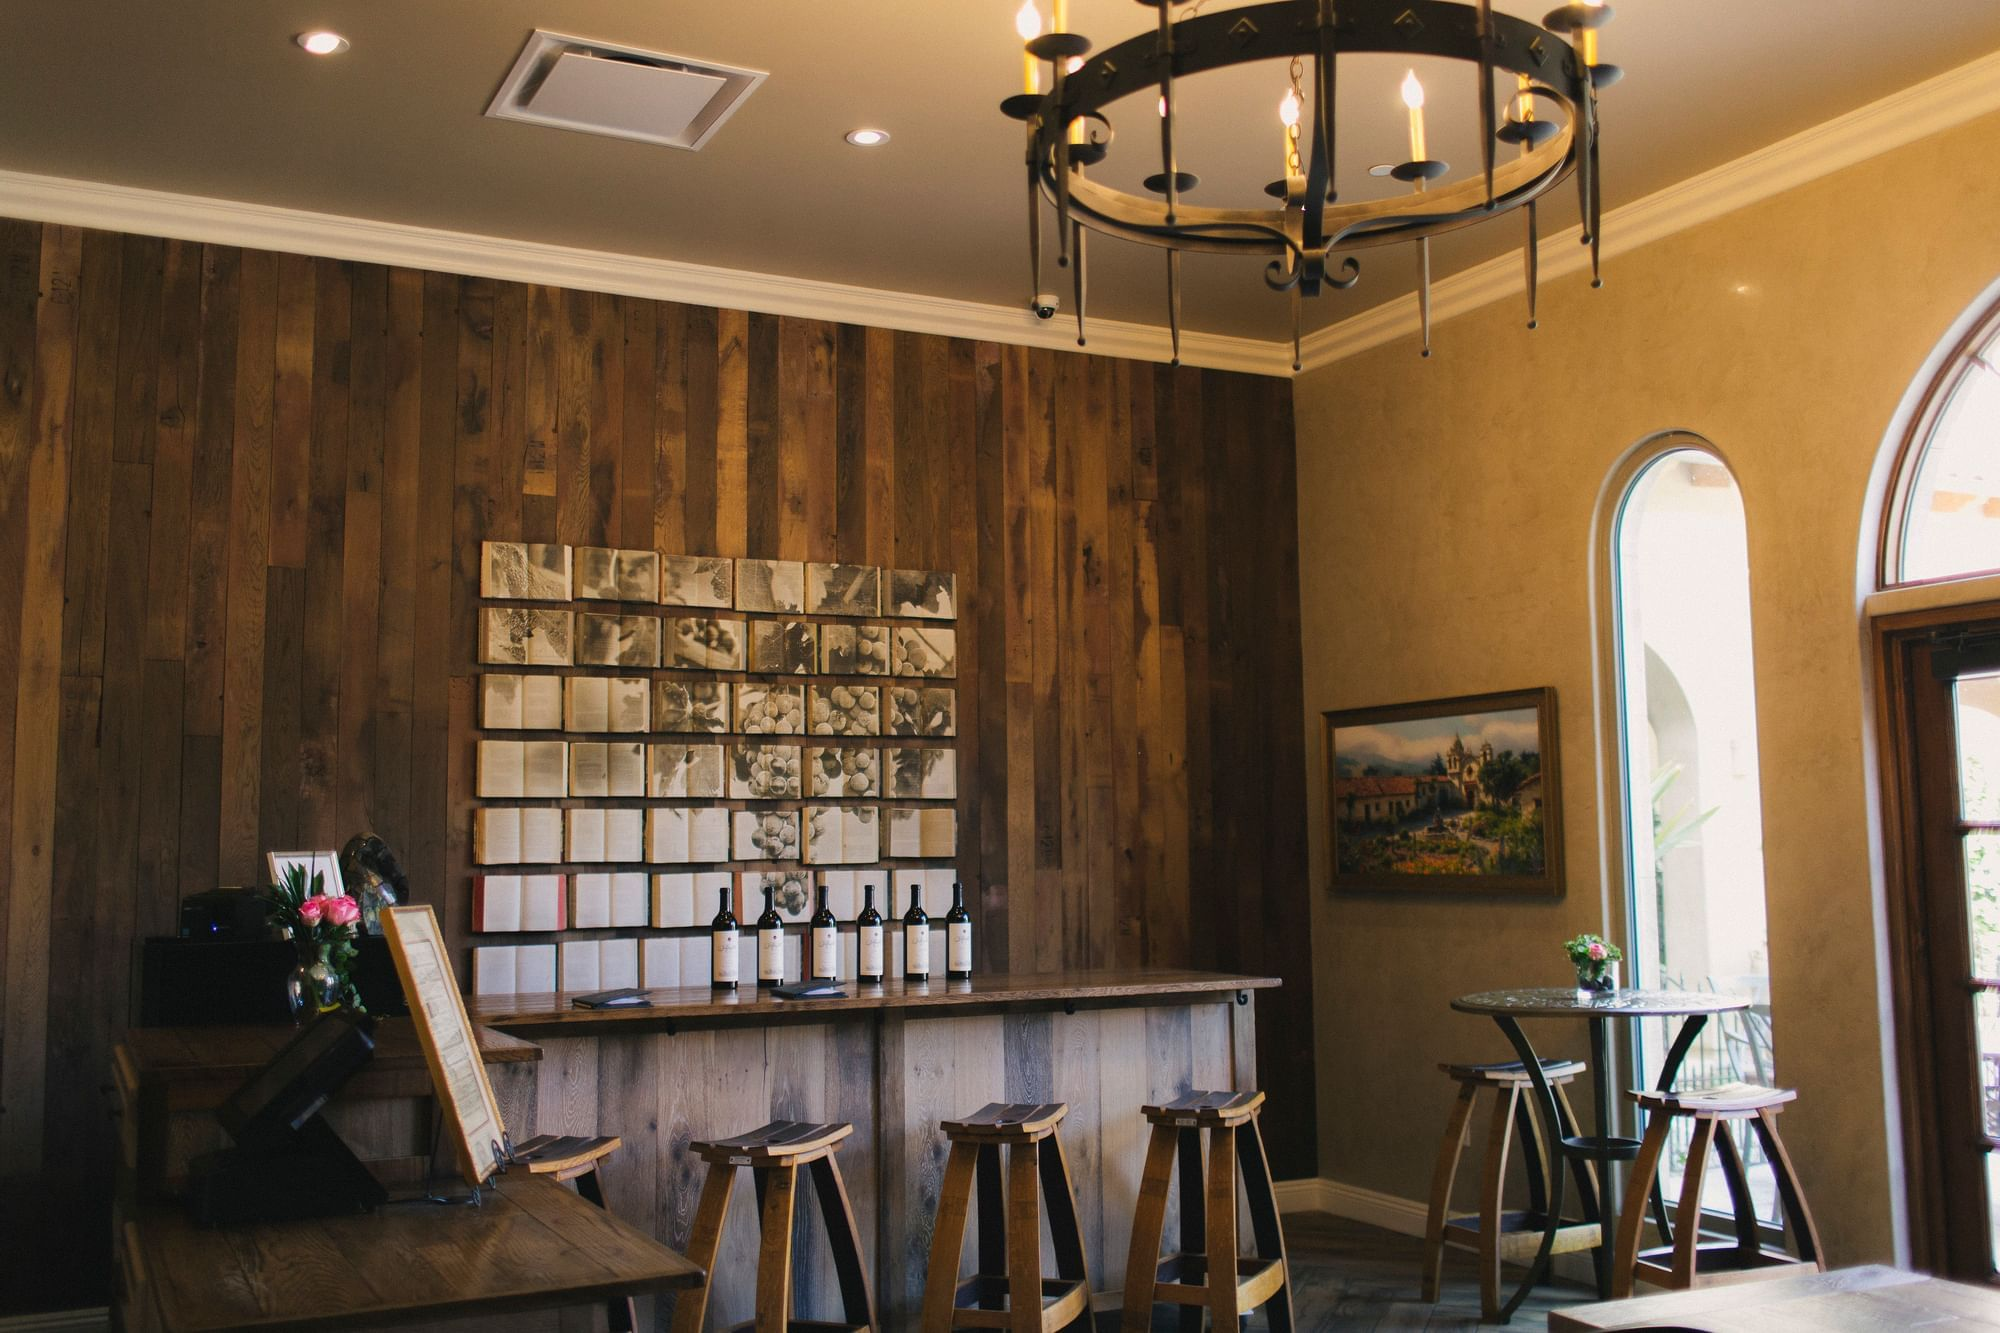 Wine tasting room with wine bar and Allegretto wine bottles line